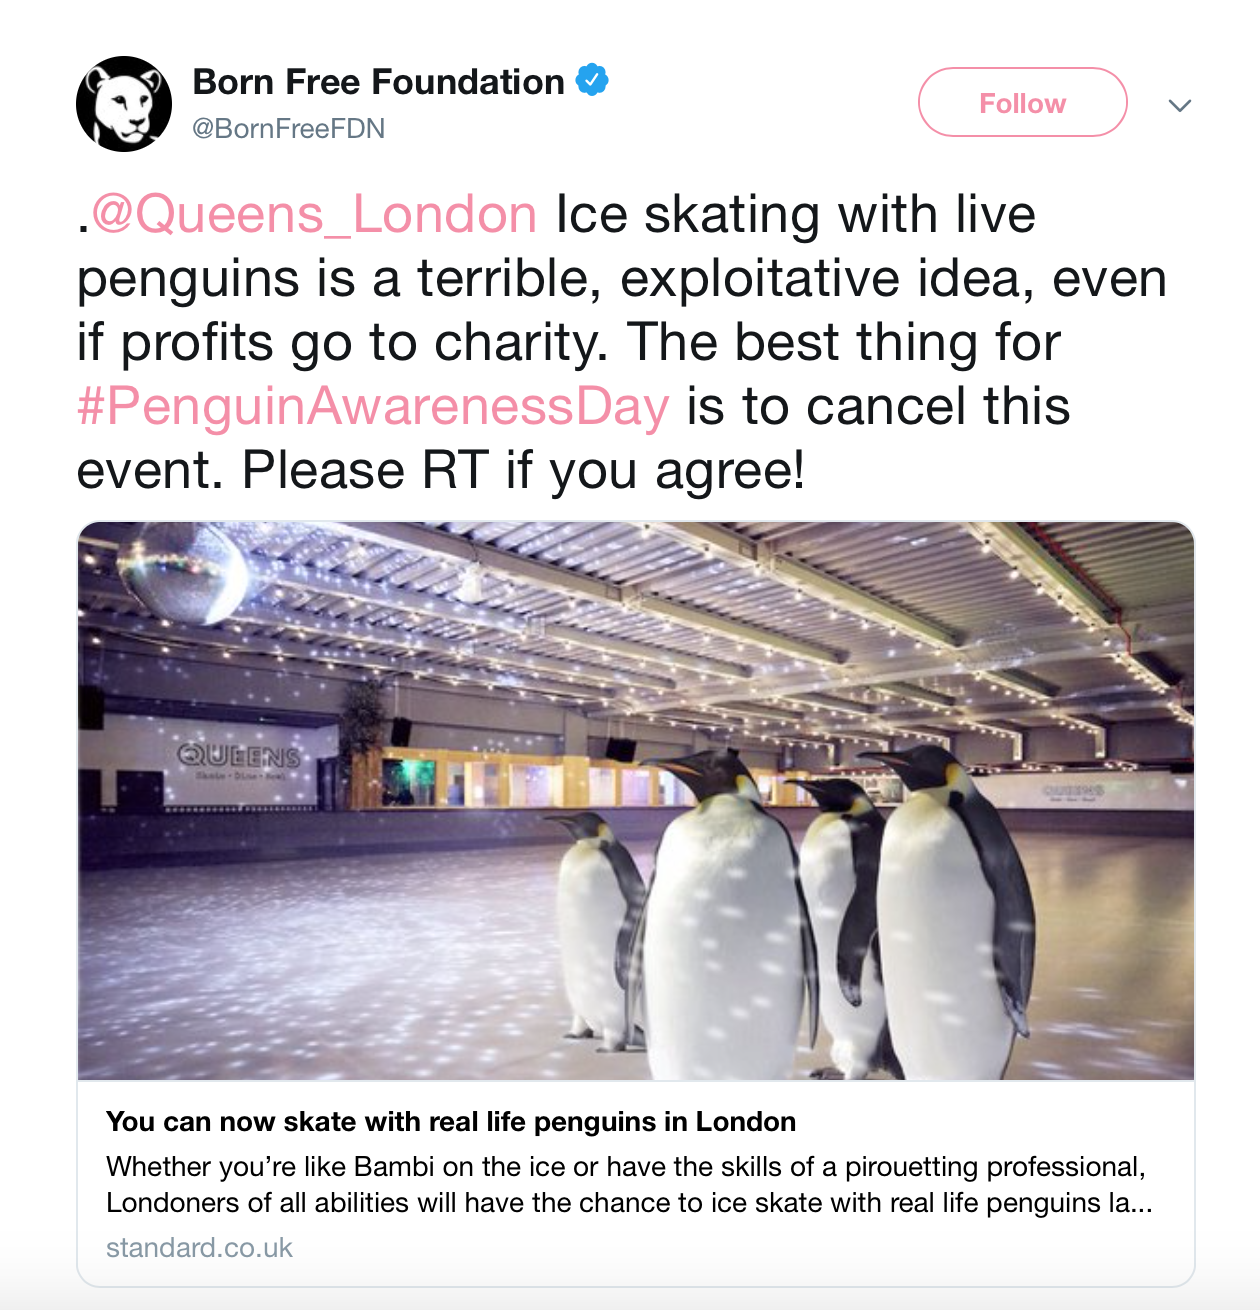 A tweet from an animal rights group urging the venue to cancel the event.